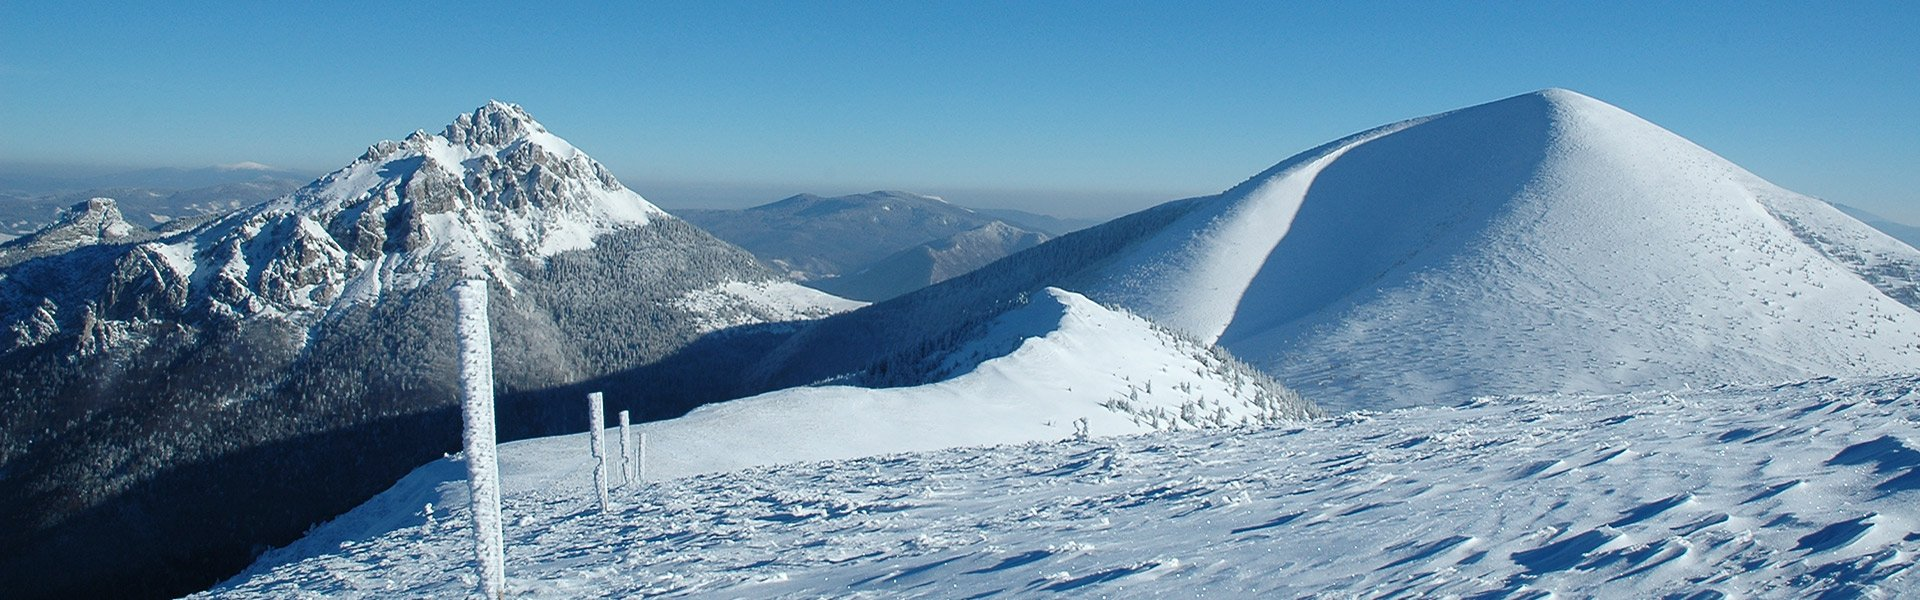 NATIONAL PARK MALA FATRA - BEST WINTER HIKING TRACKS IN SLOVAKIA